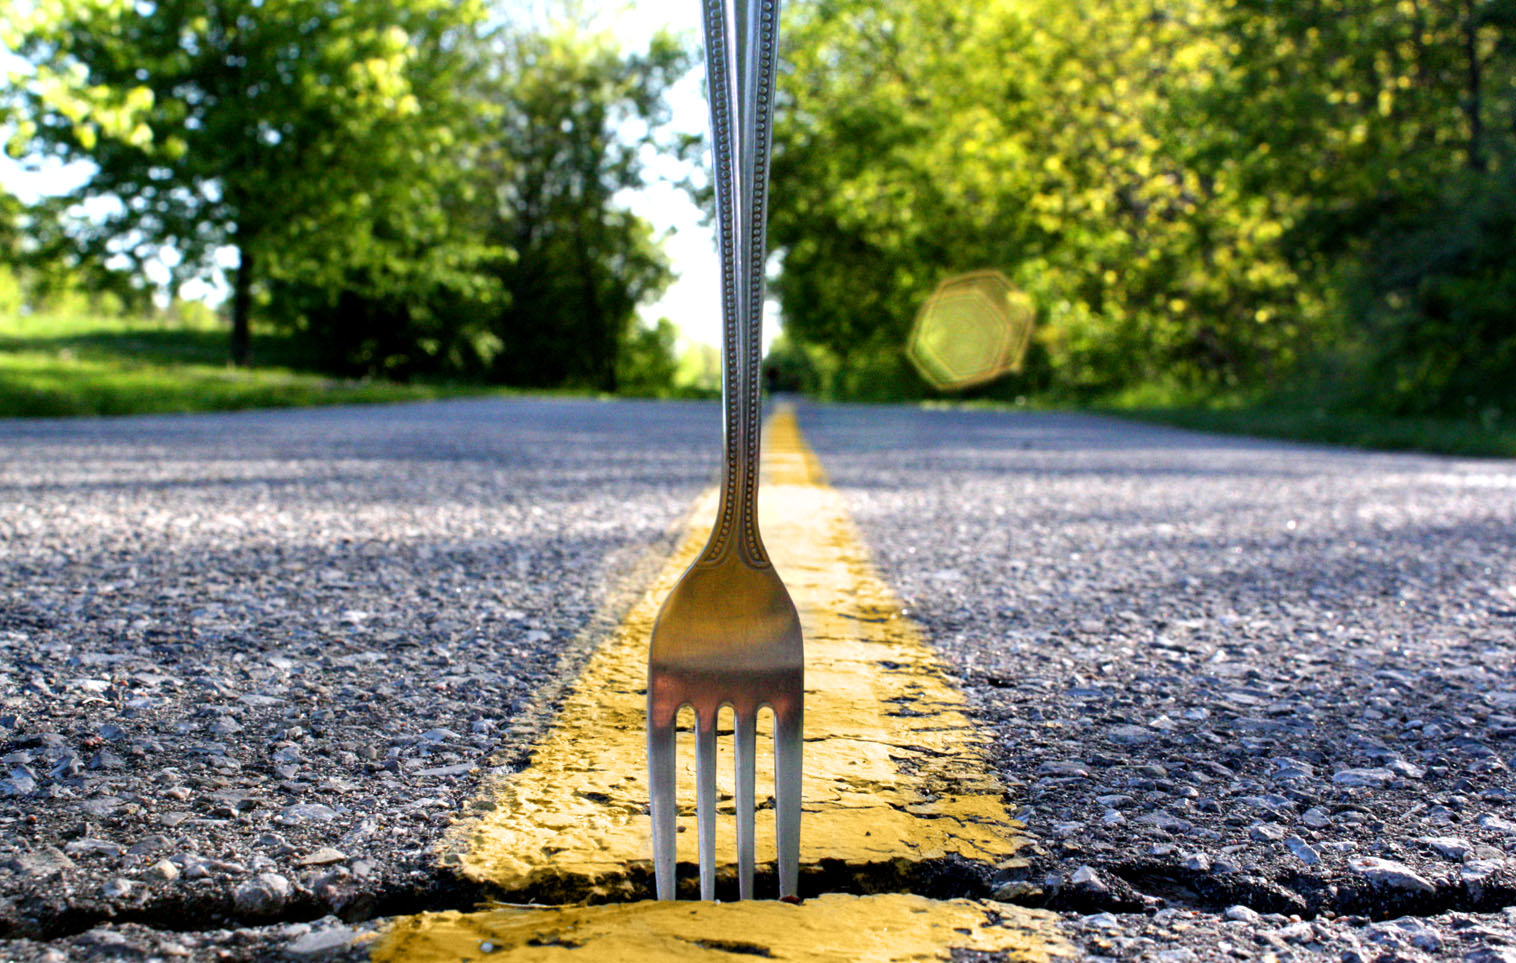 Fork_In_The_Road-1